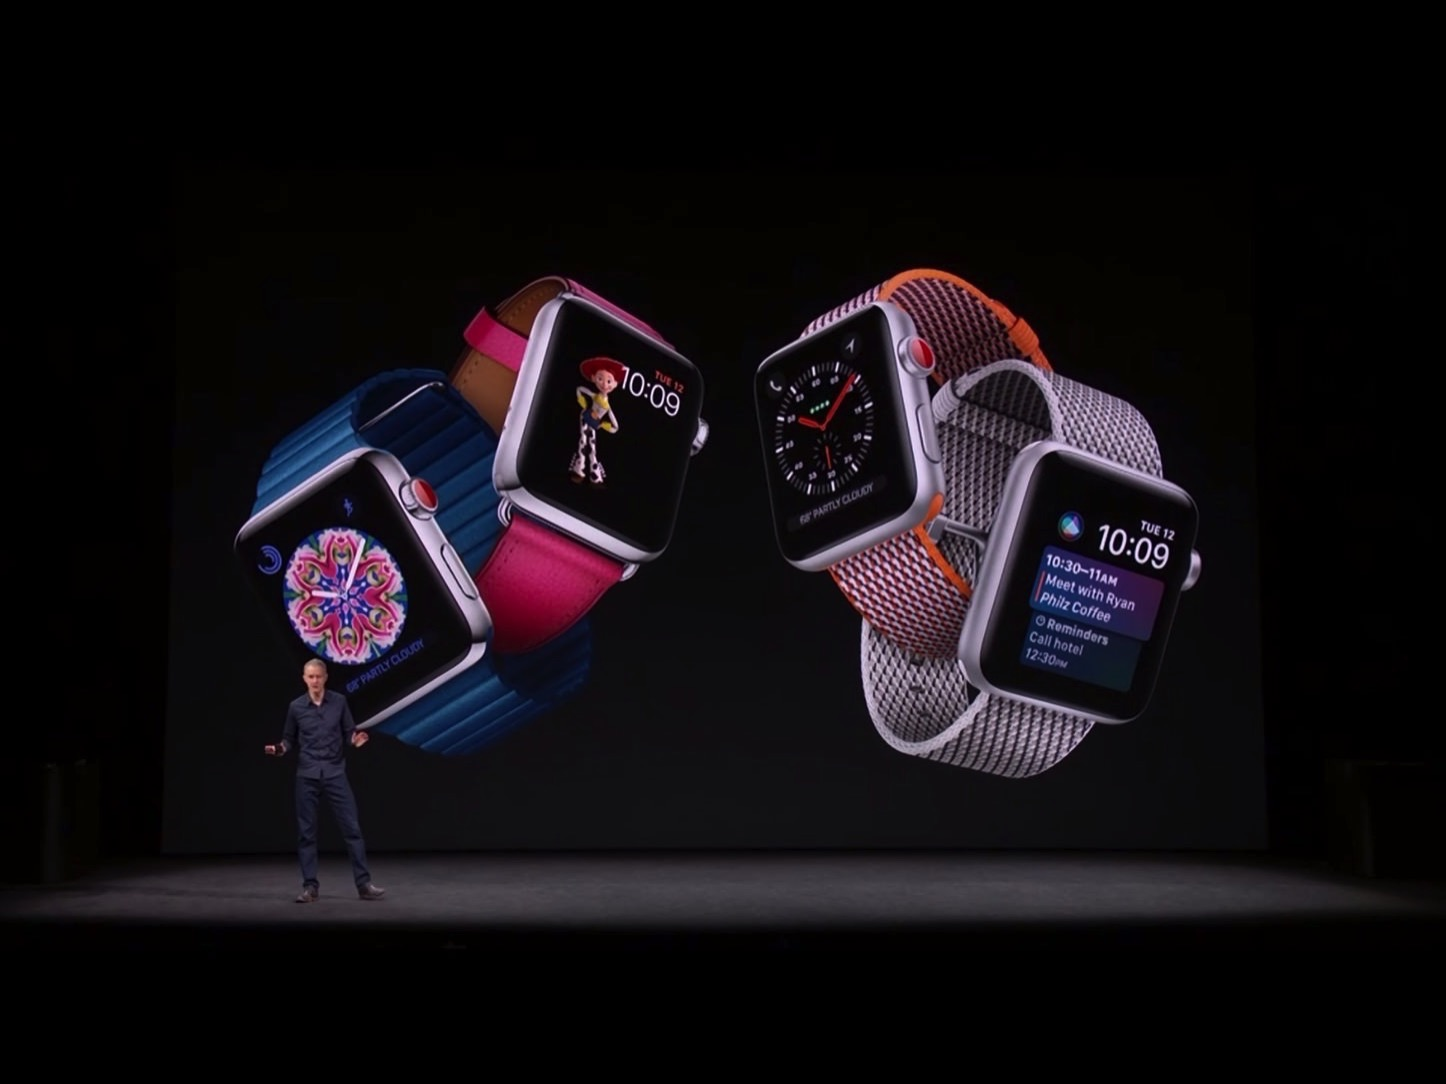 Apple-Watch-Series-3-21.jpg